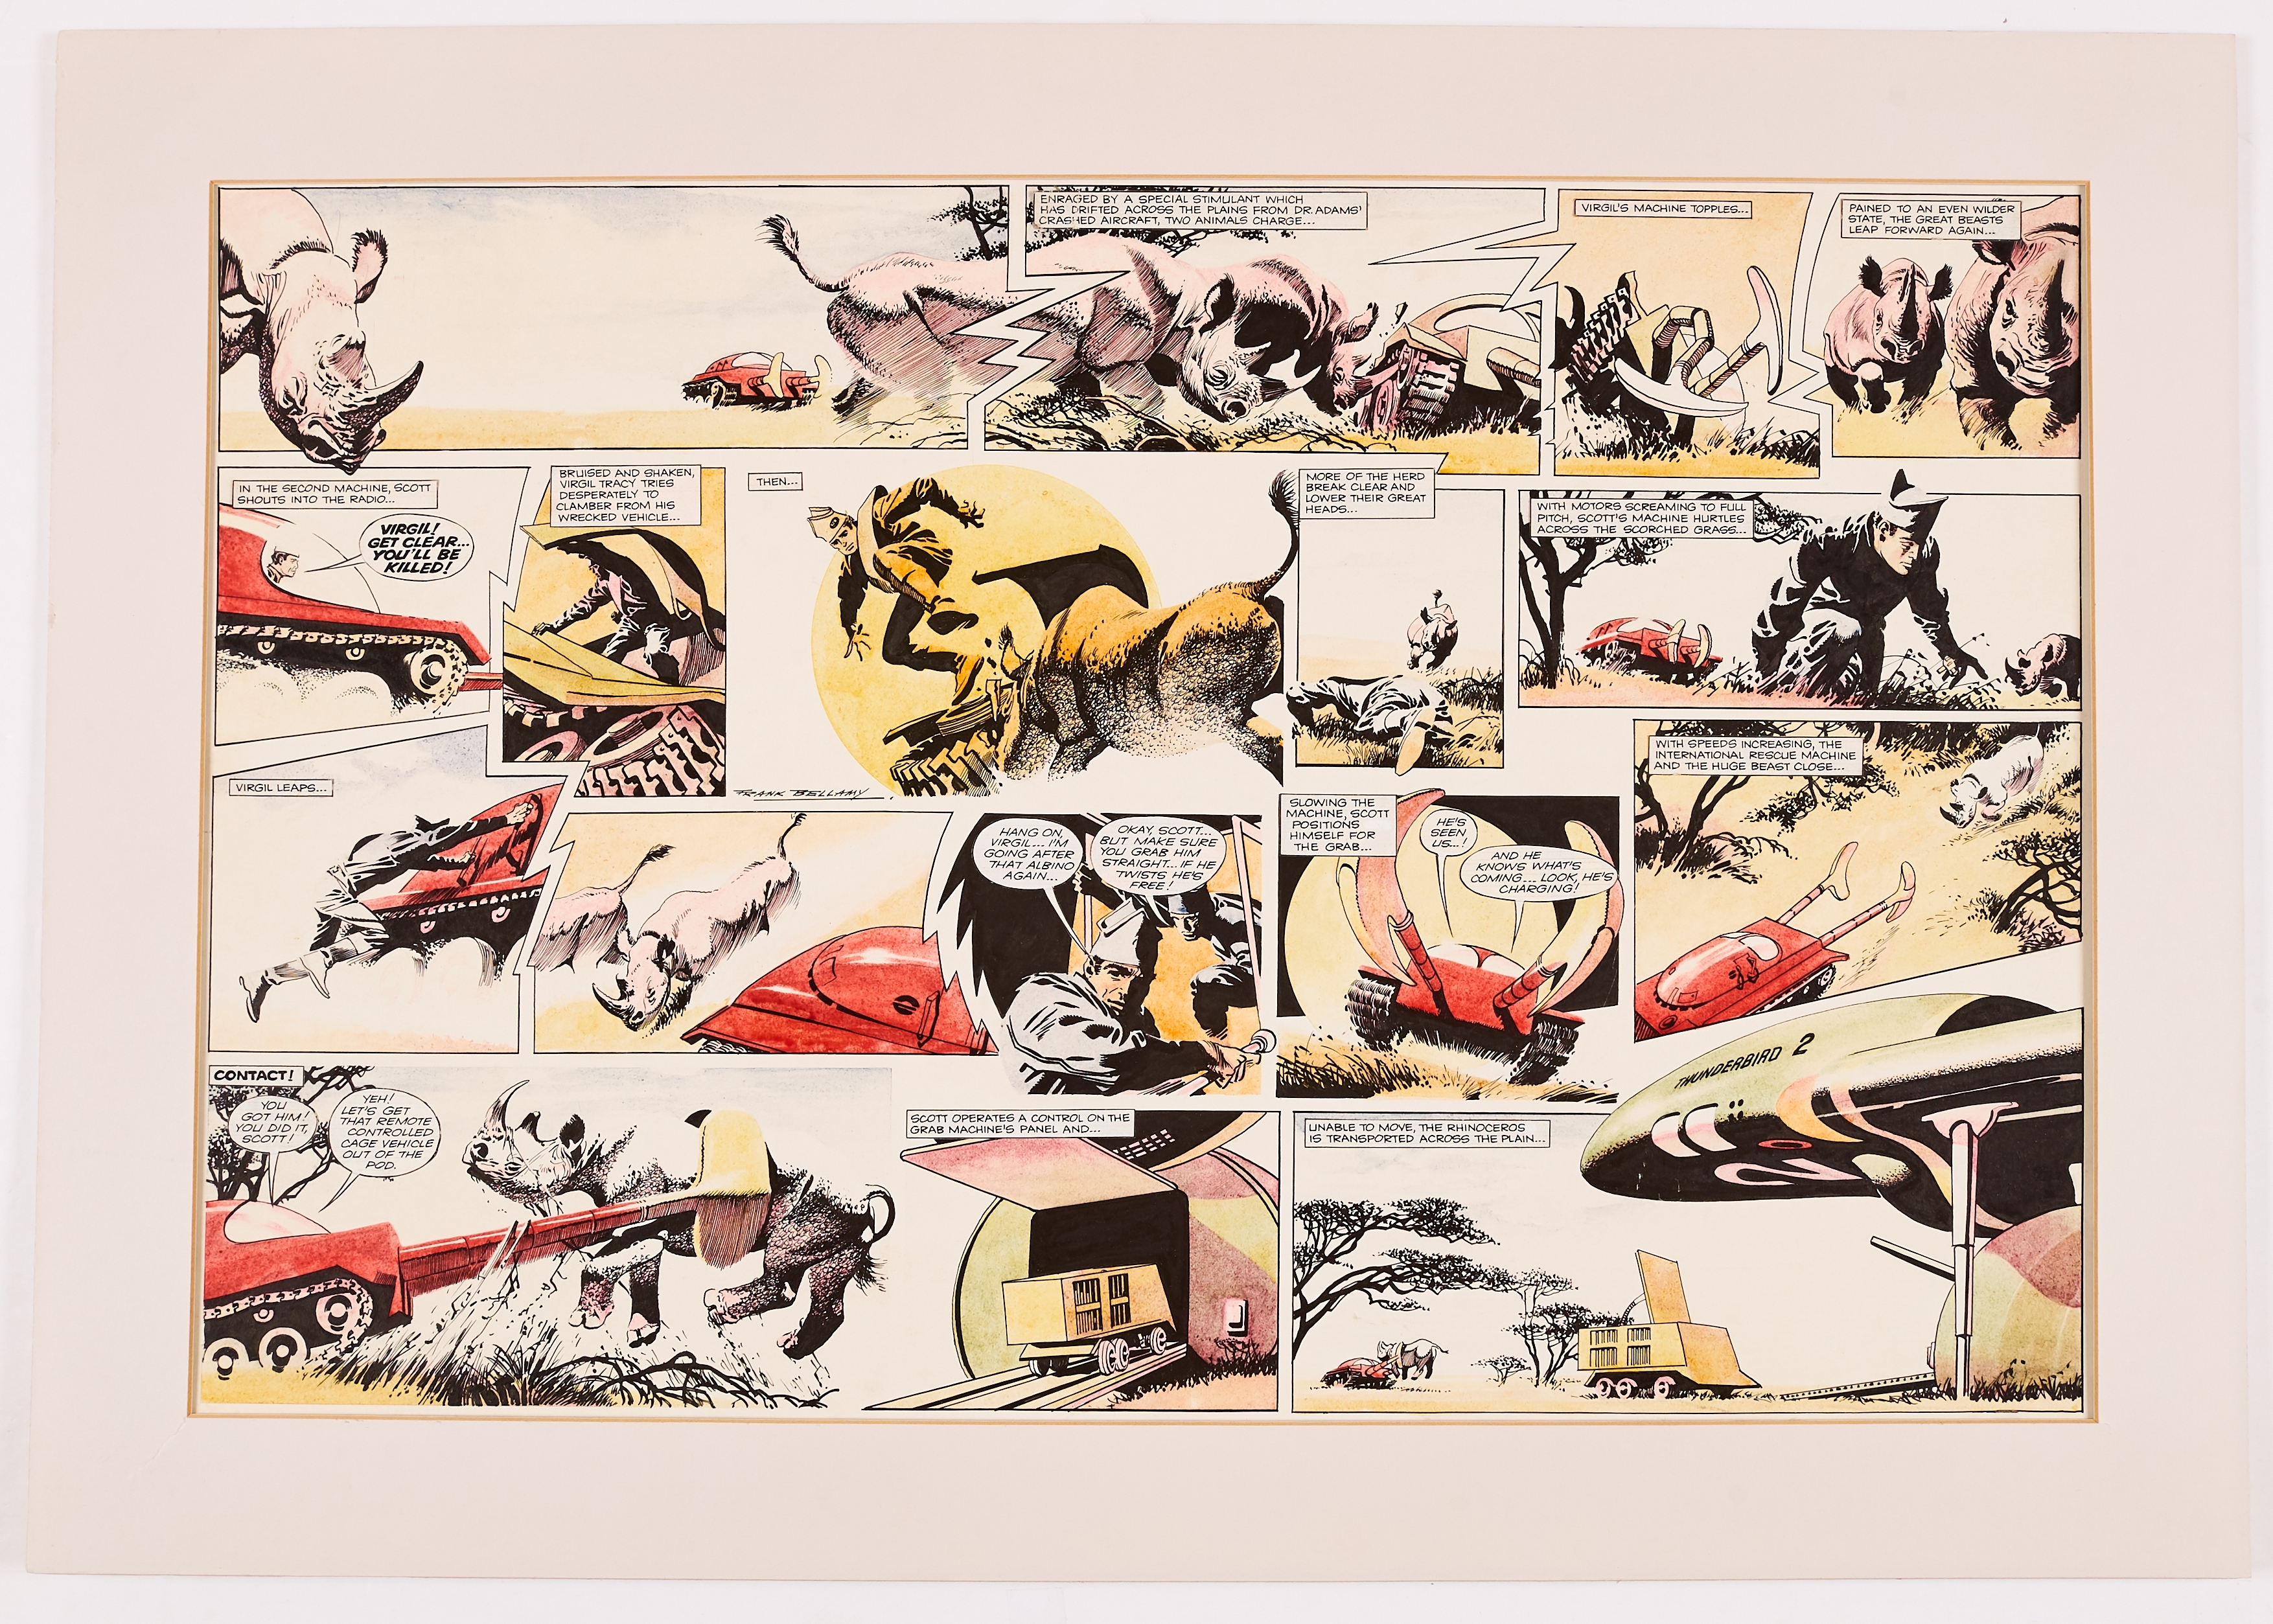 Thunderbirds original double-page artwork drawn, painted and signed by Frank Bellamy from TV Century